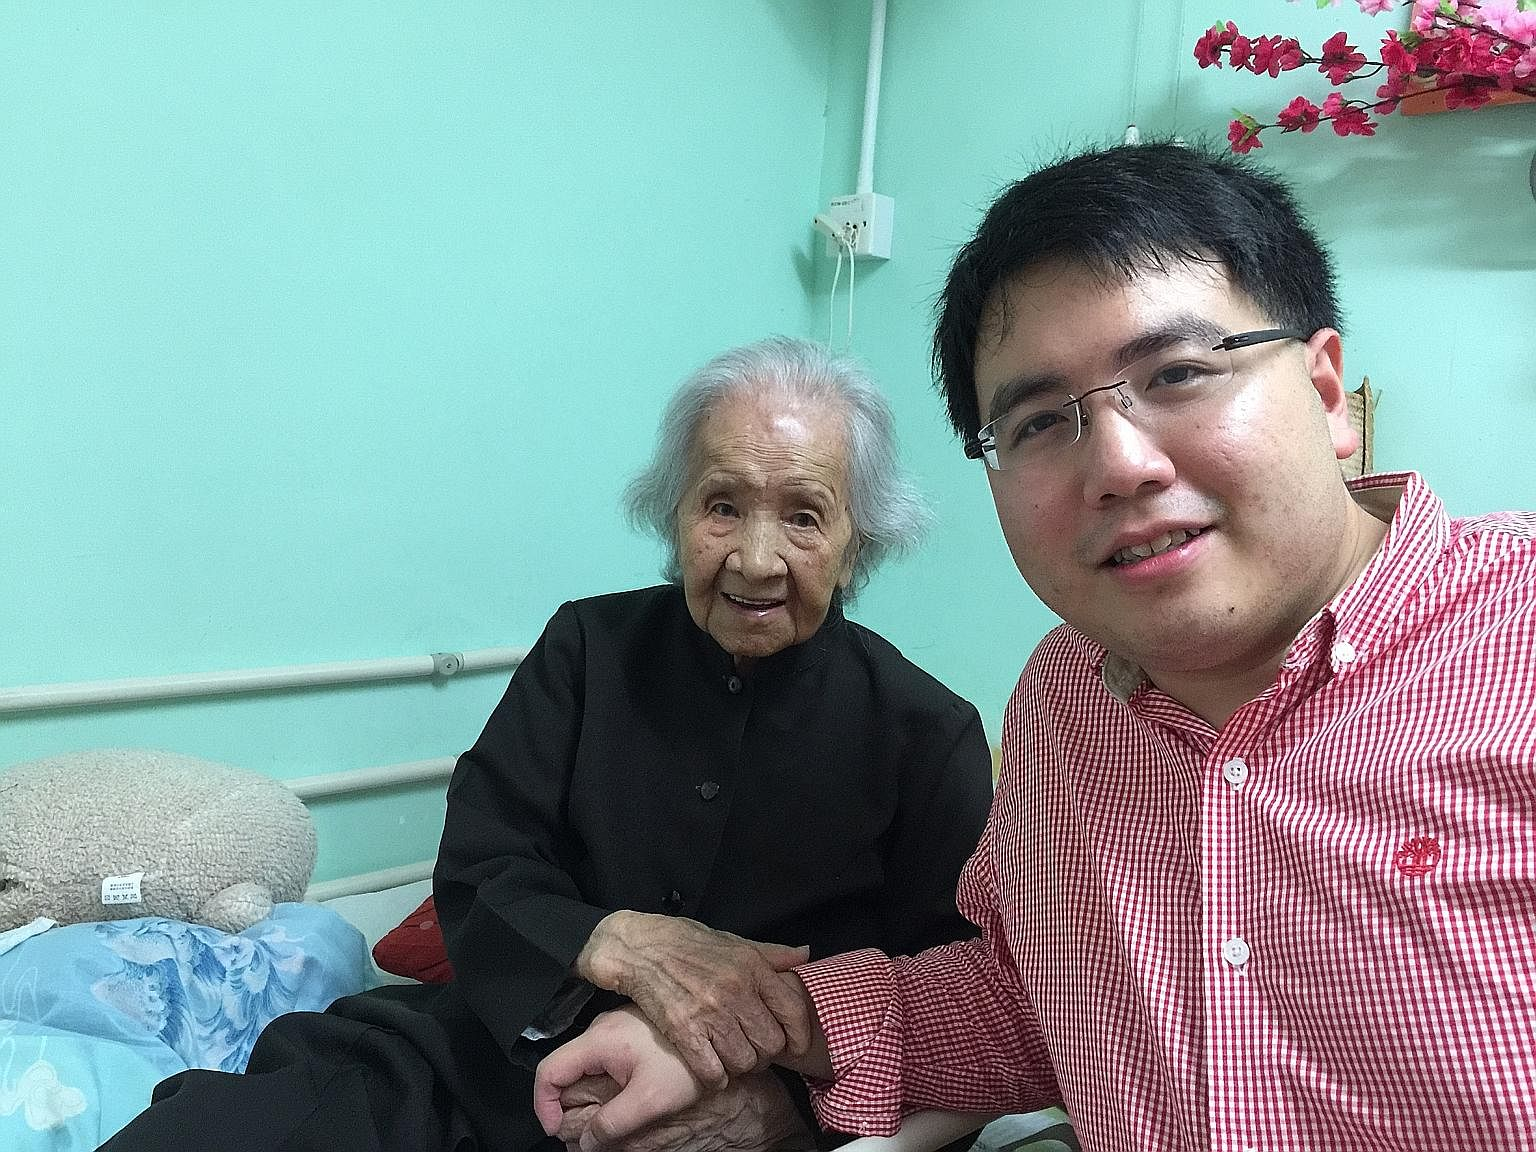 The writer's nephew, Yi Da, with his 107-year-old great aunt, Madam Goh Seok Lian. Despite being only 27 years old, he has already established and used a CPF Investment Scheme account. As our lifespans get longer, we will have to save much earlier in